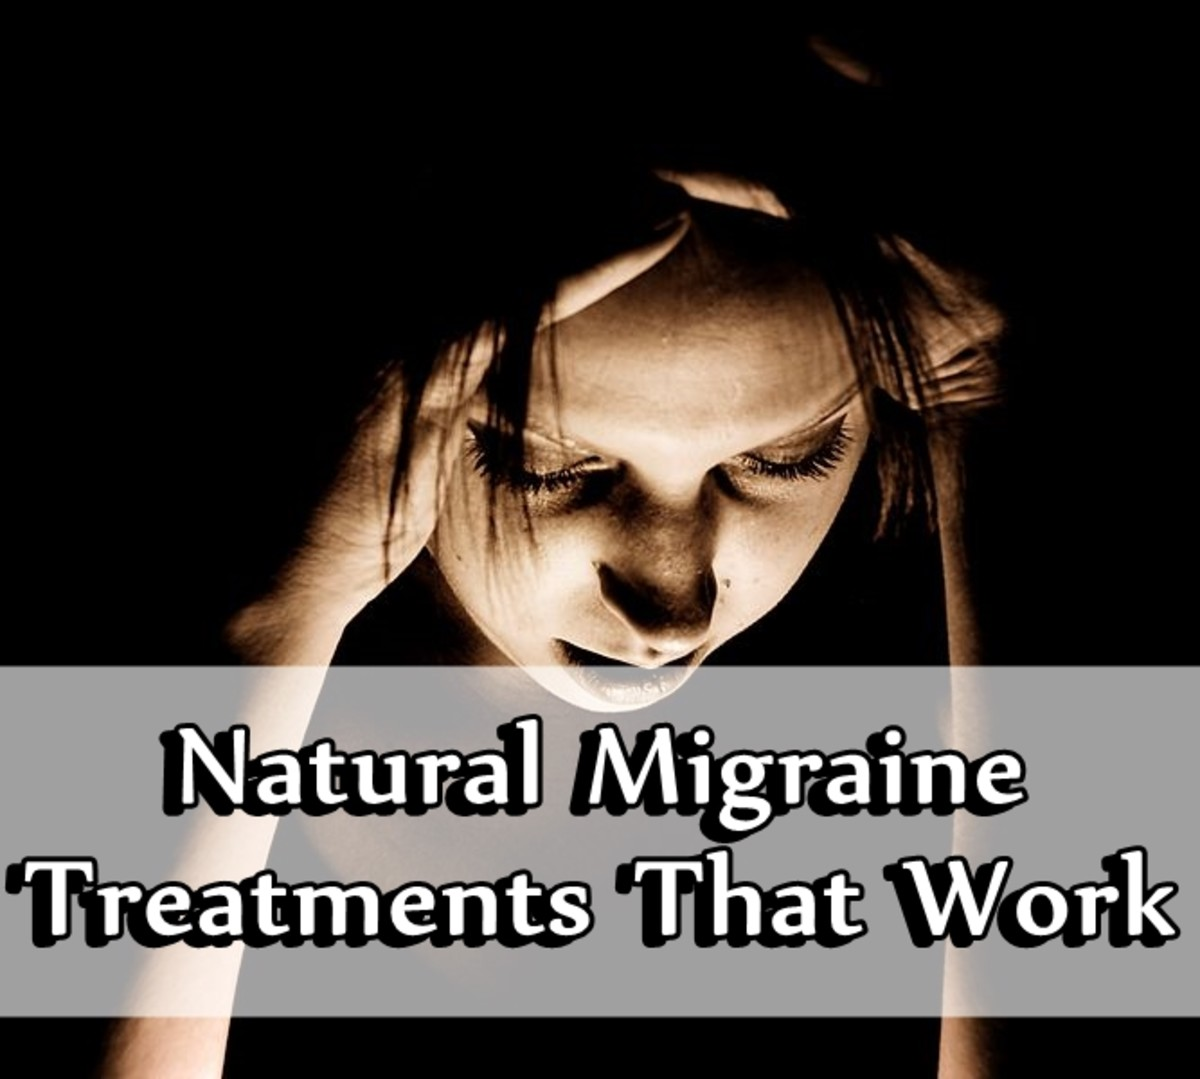 Natural Migraine Treatments That Work